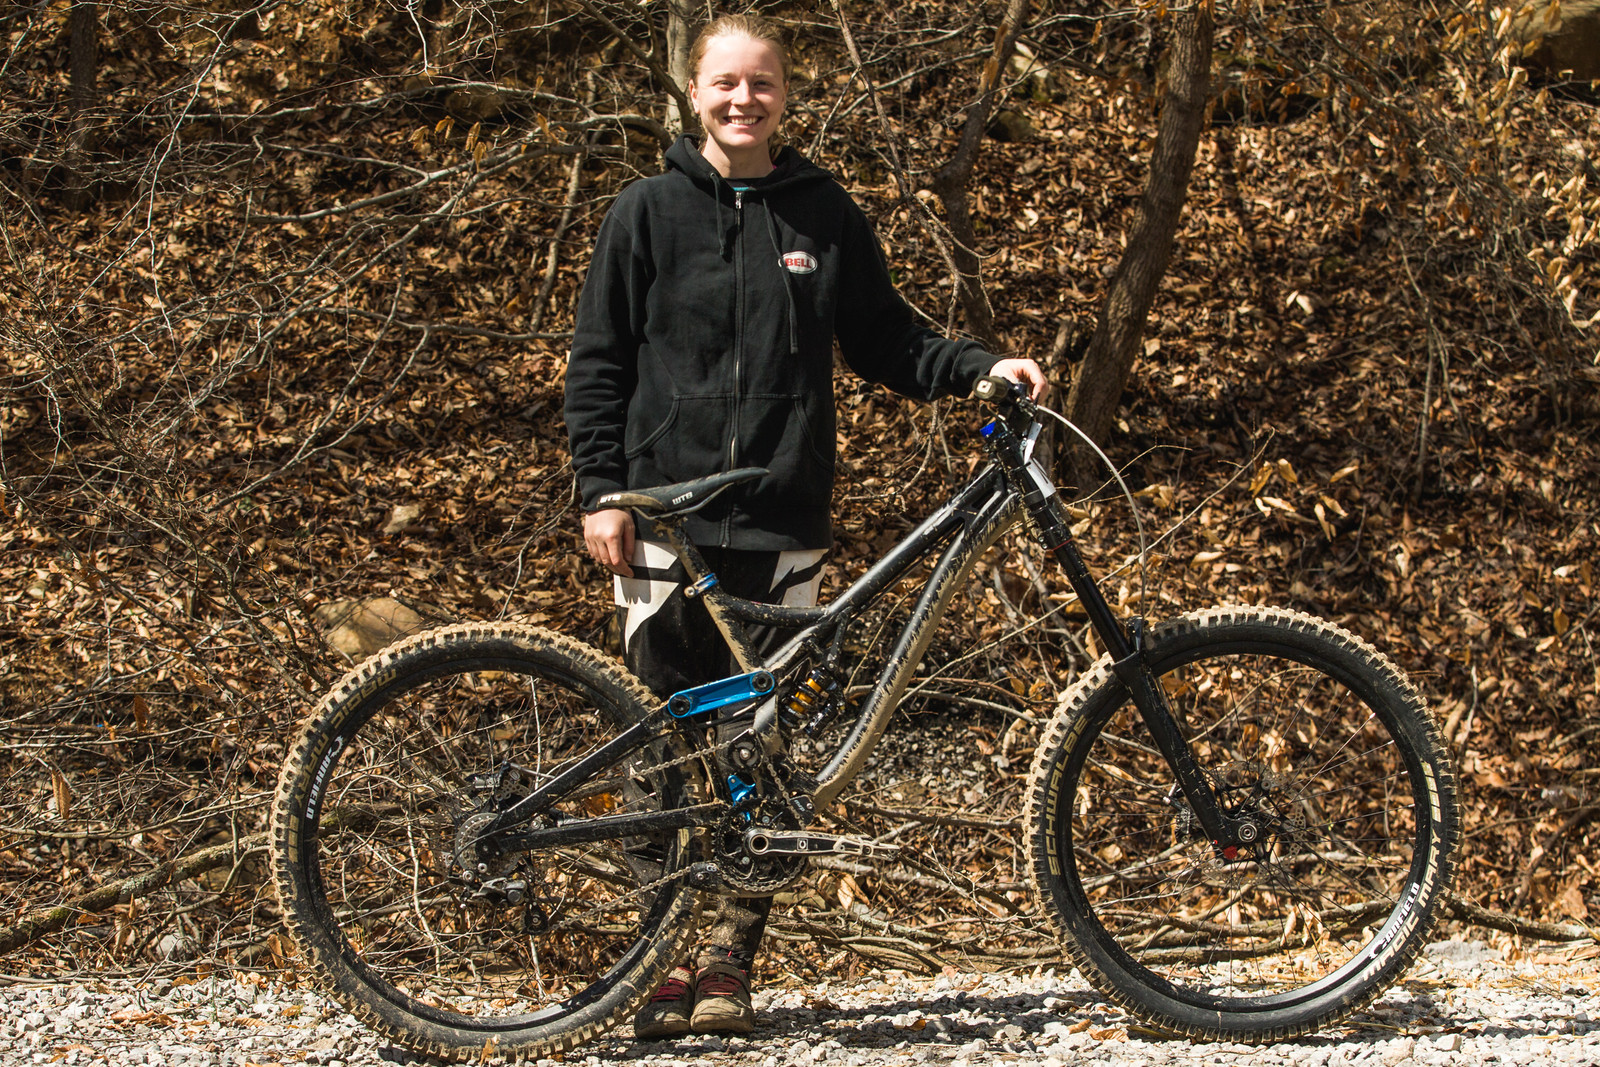 Pro GRT Pro Bike - Frida Ronning's Canfield Jedi - Pro Bikes from Windrock Pro GRT - Mountain Biking Pictures - Vital MTB